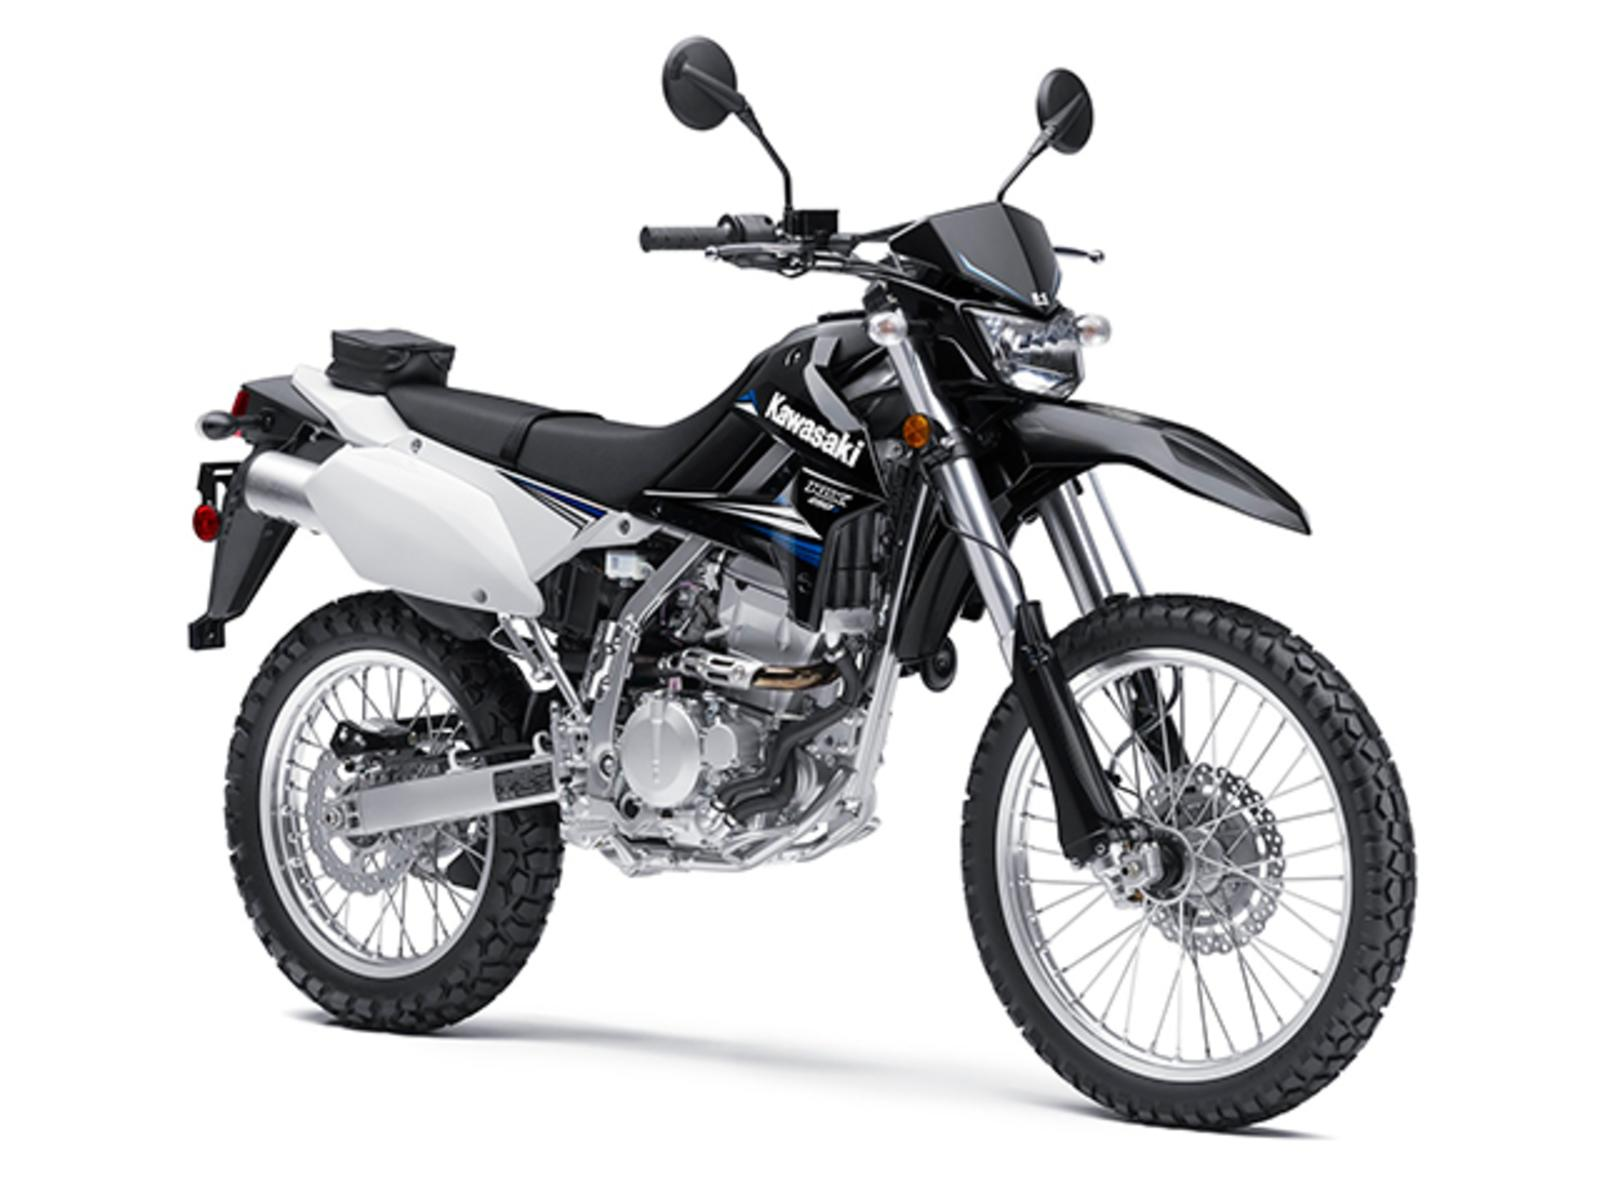 2014 kawasaki klx 250s review top speed. Black Bedroom Furniture Sets. Home Design Ideas